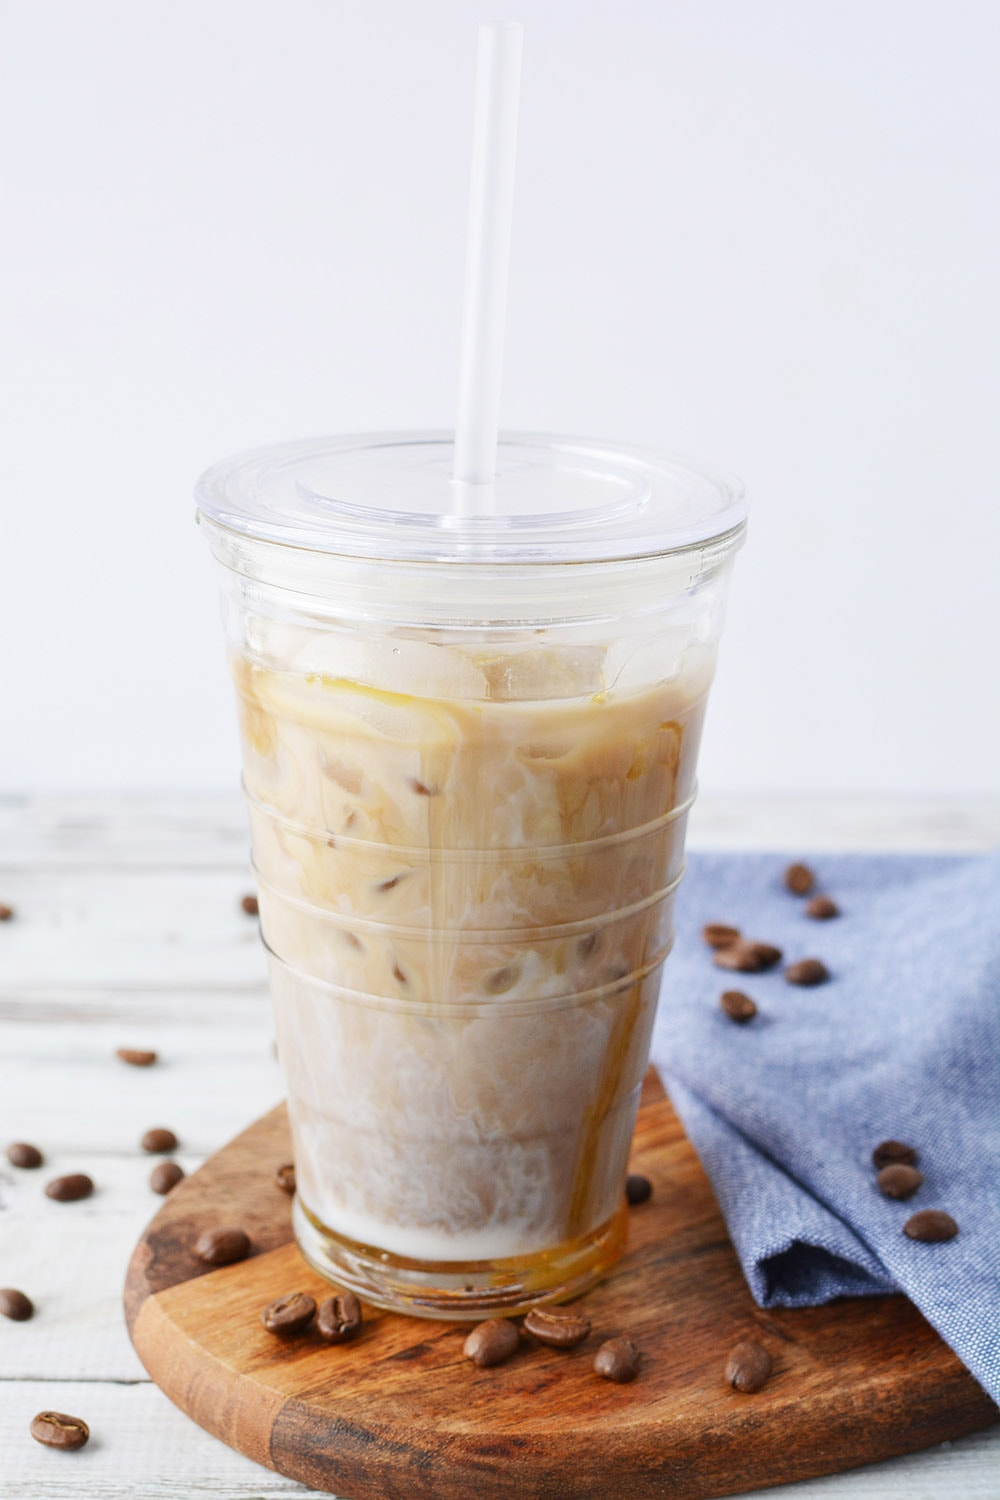 Iced coffee with caramel in a tumbler with straw